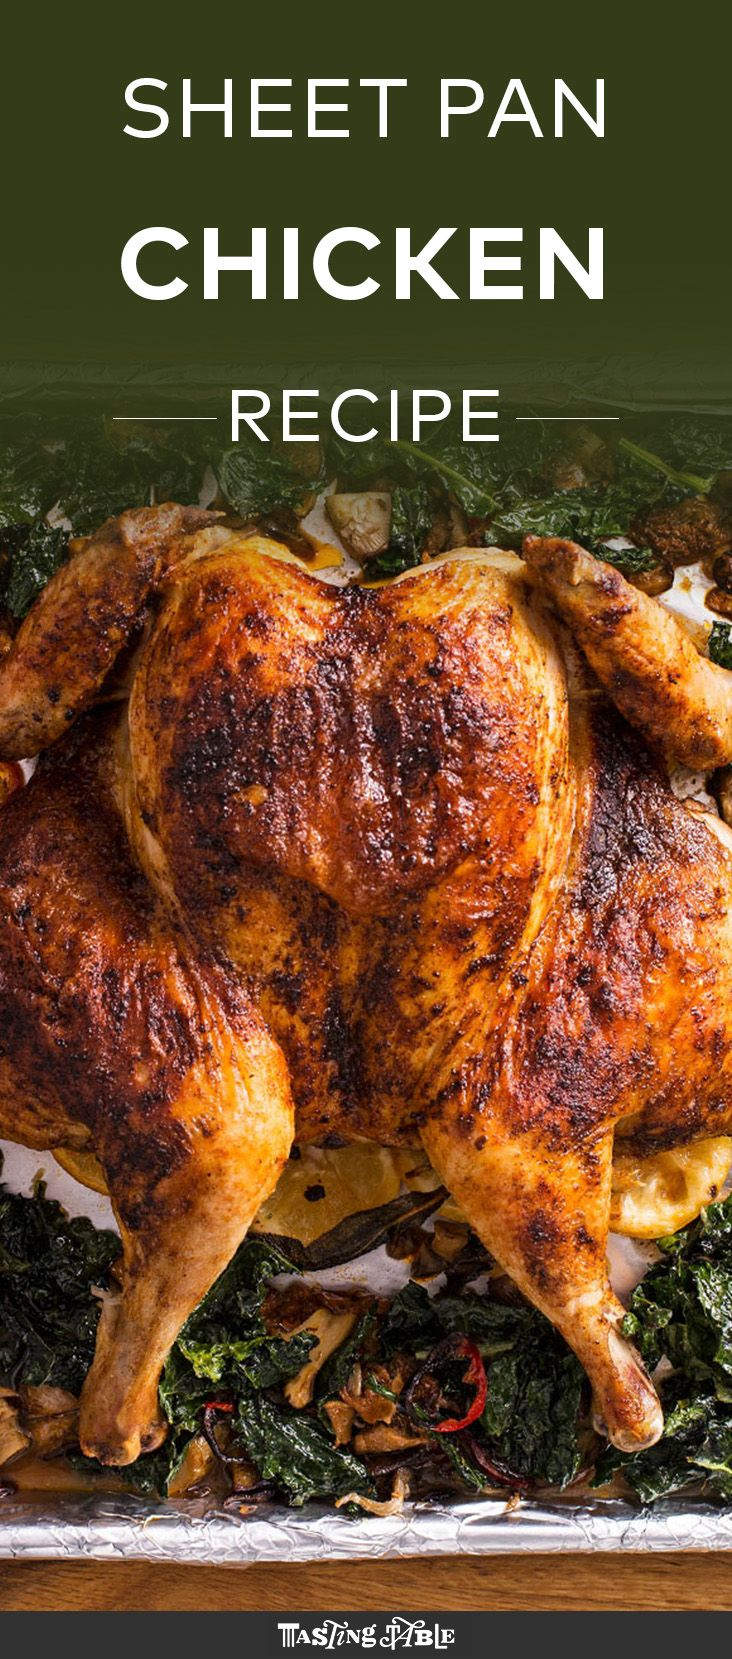 Watch and learn how to spatchcock a chicken, then roast it with vegetables all on one sheet pan.